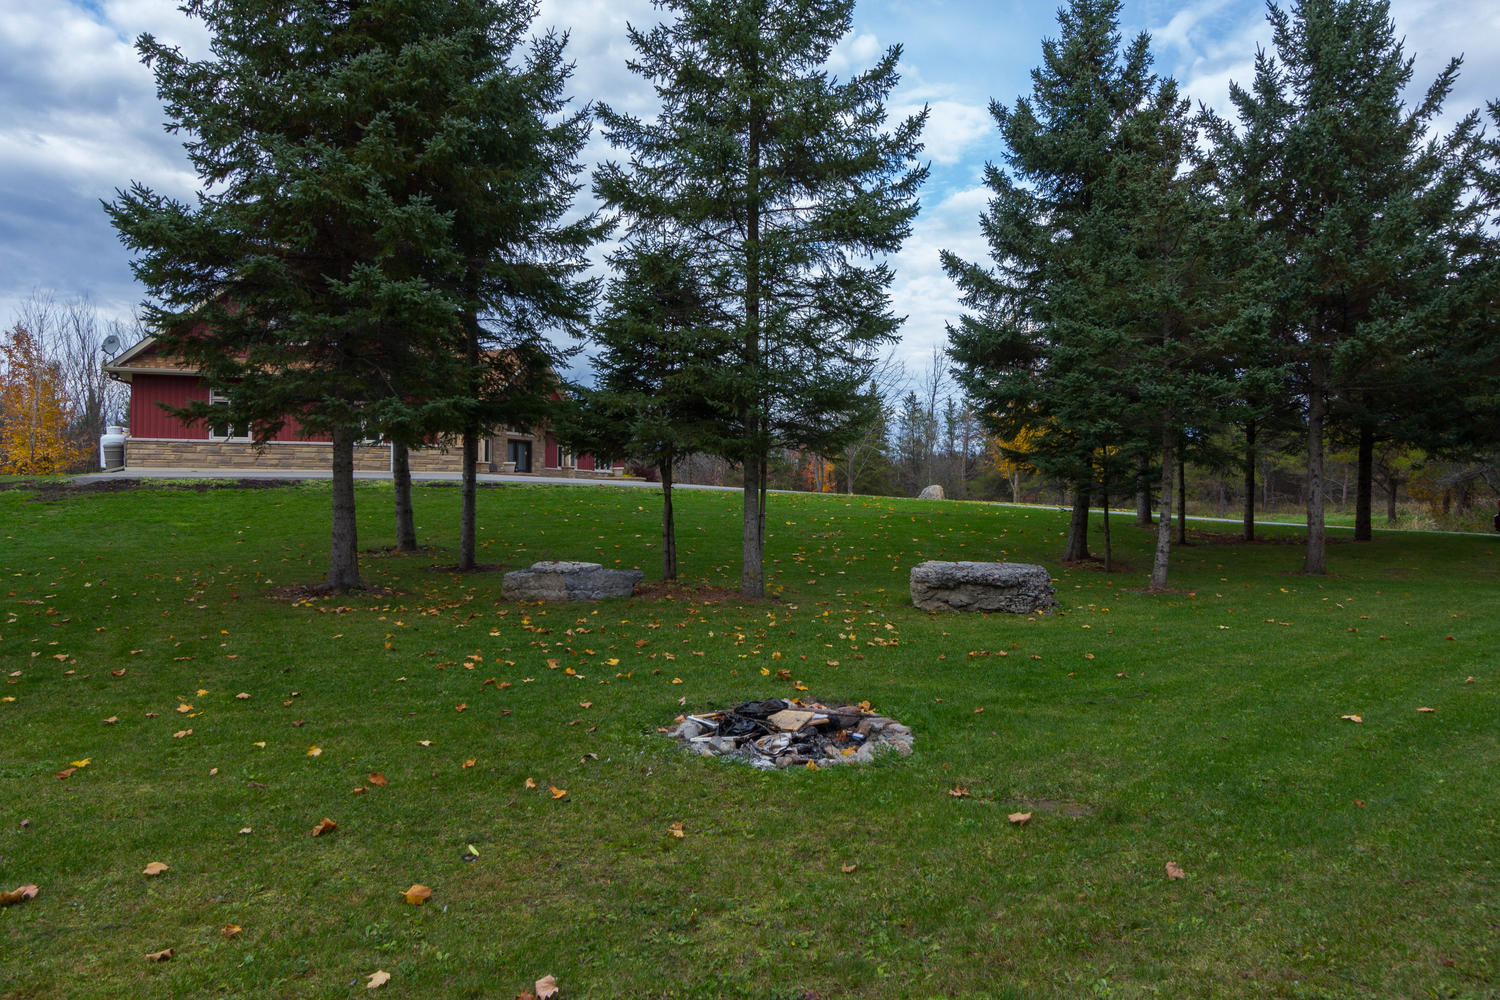 With 5 Acres of country living, you certainly need a fire pit!